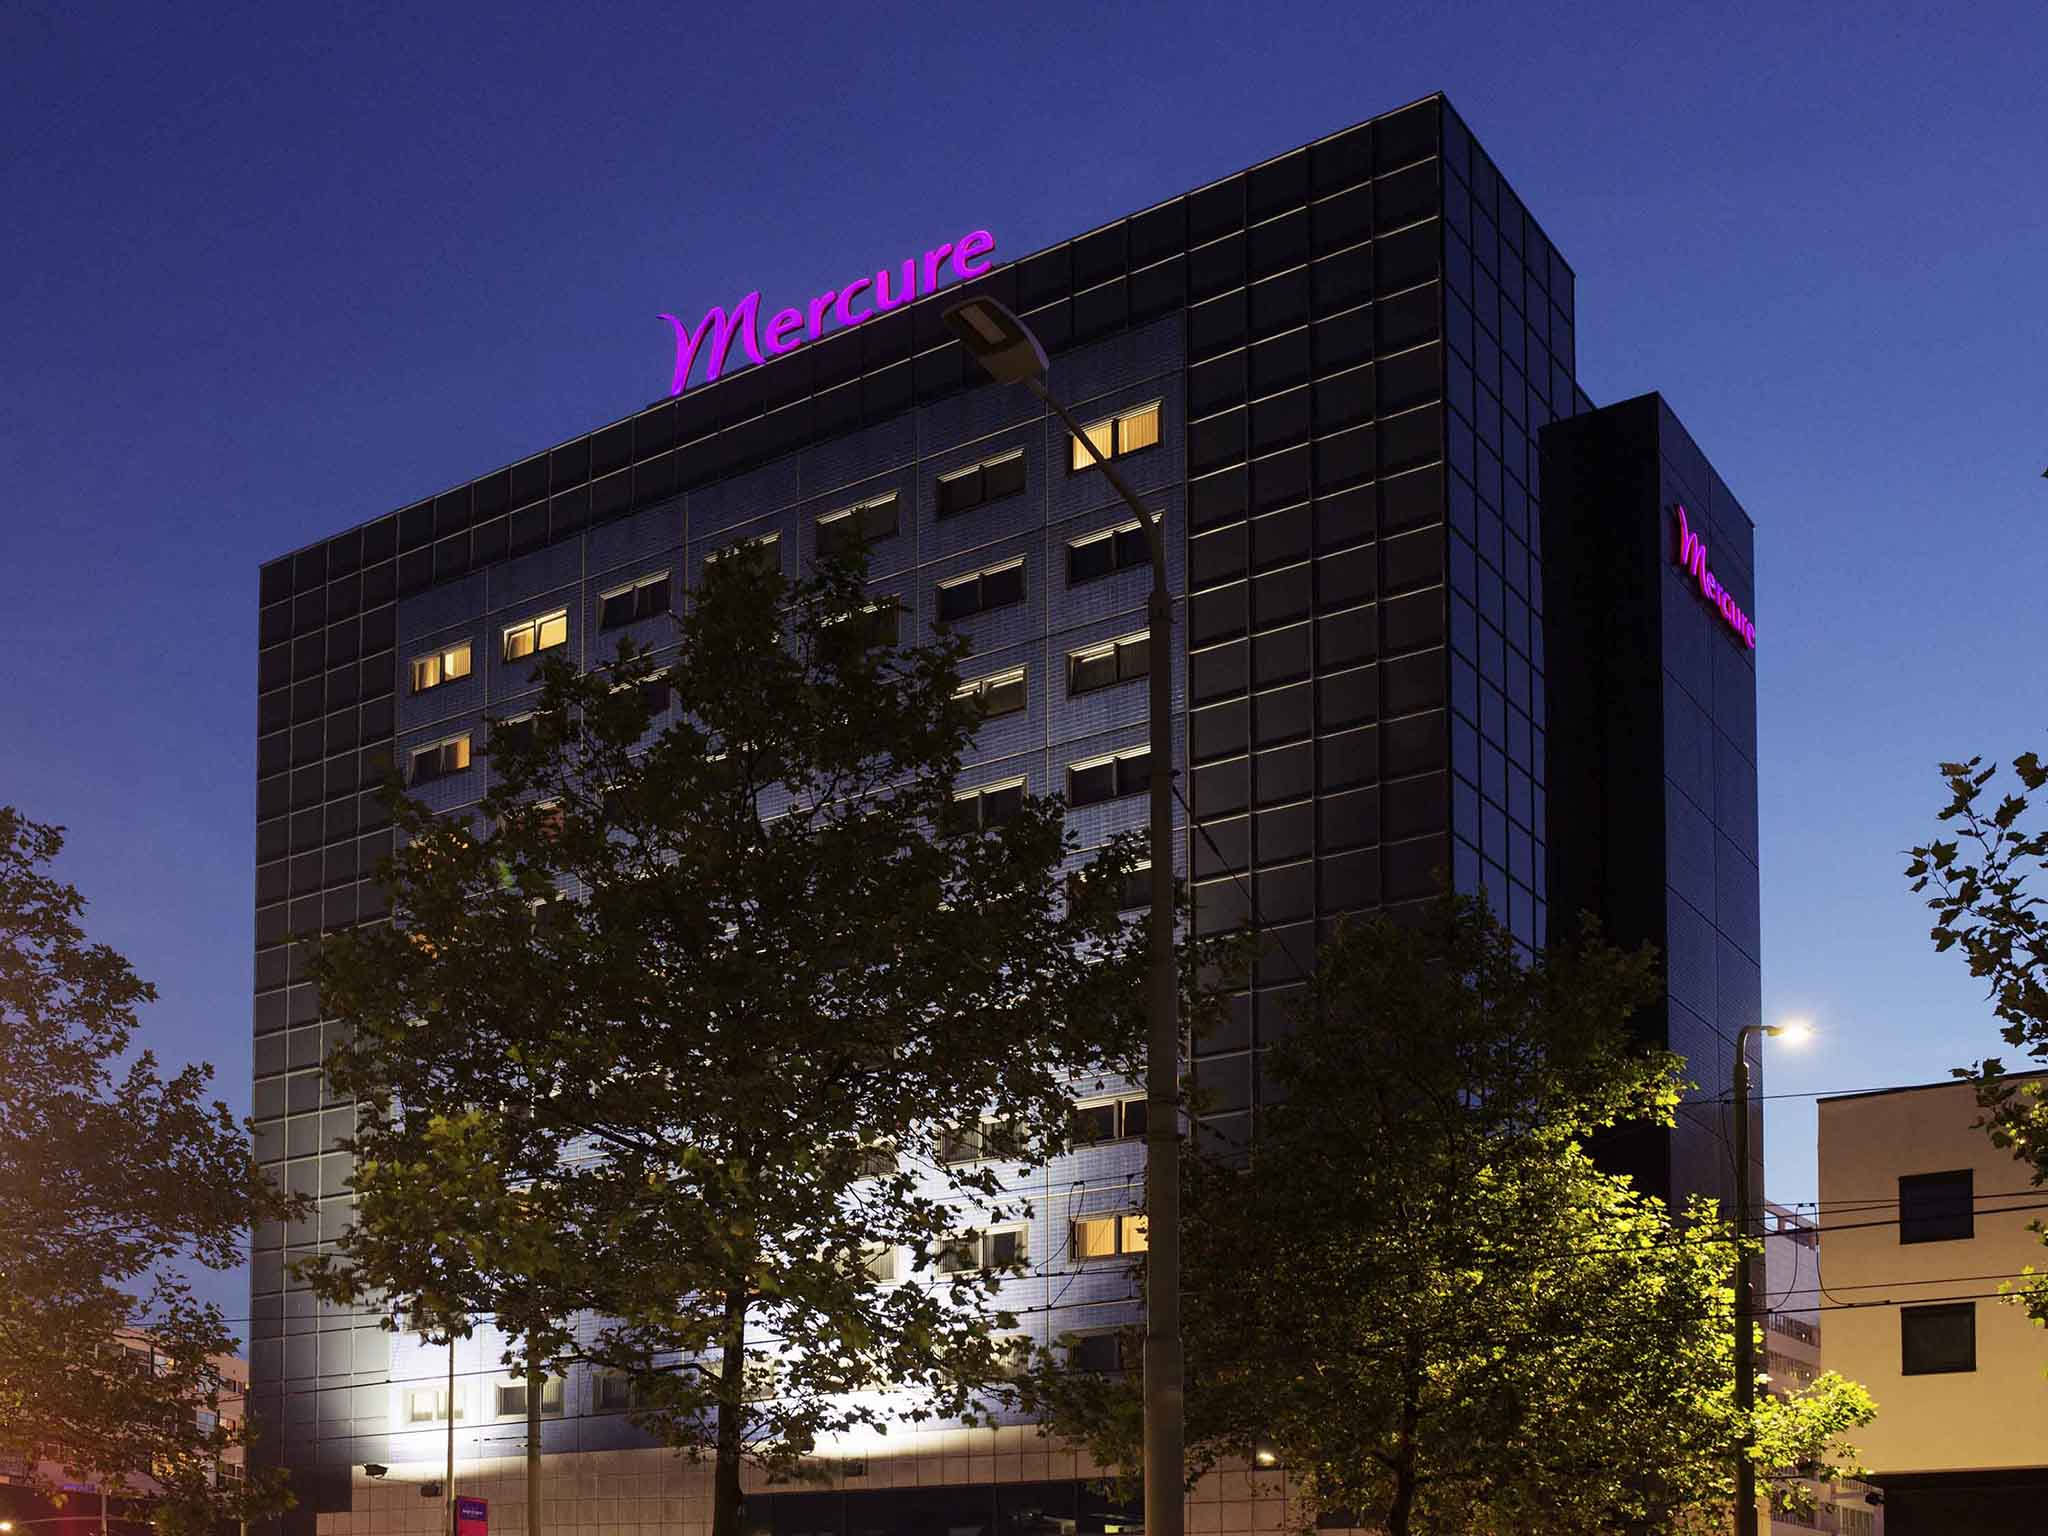 Hotel – Mercure Hotel Haag Central